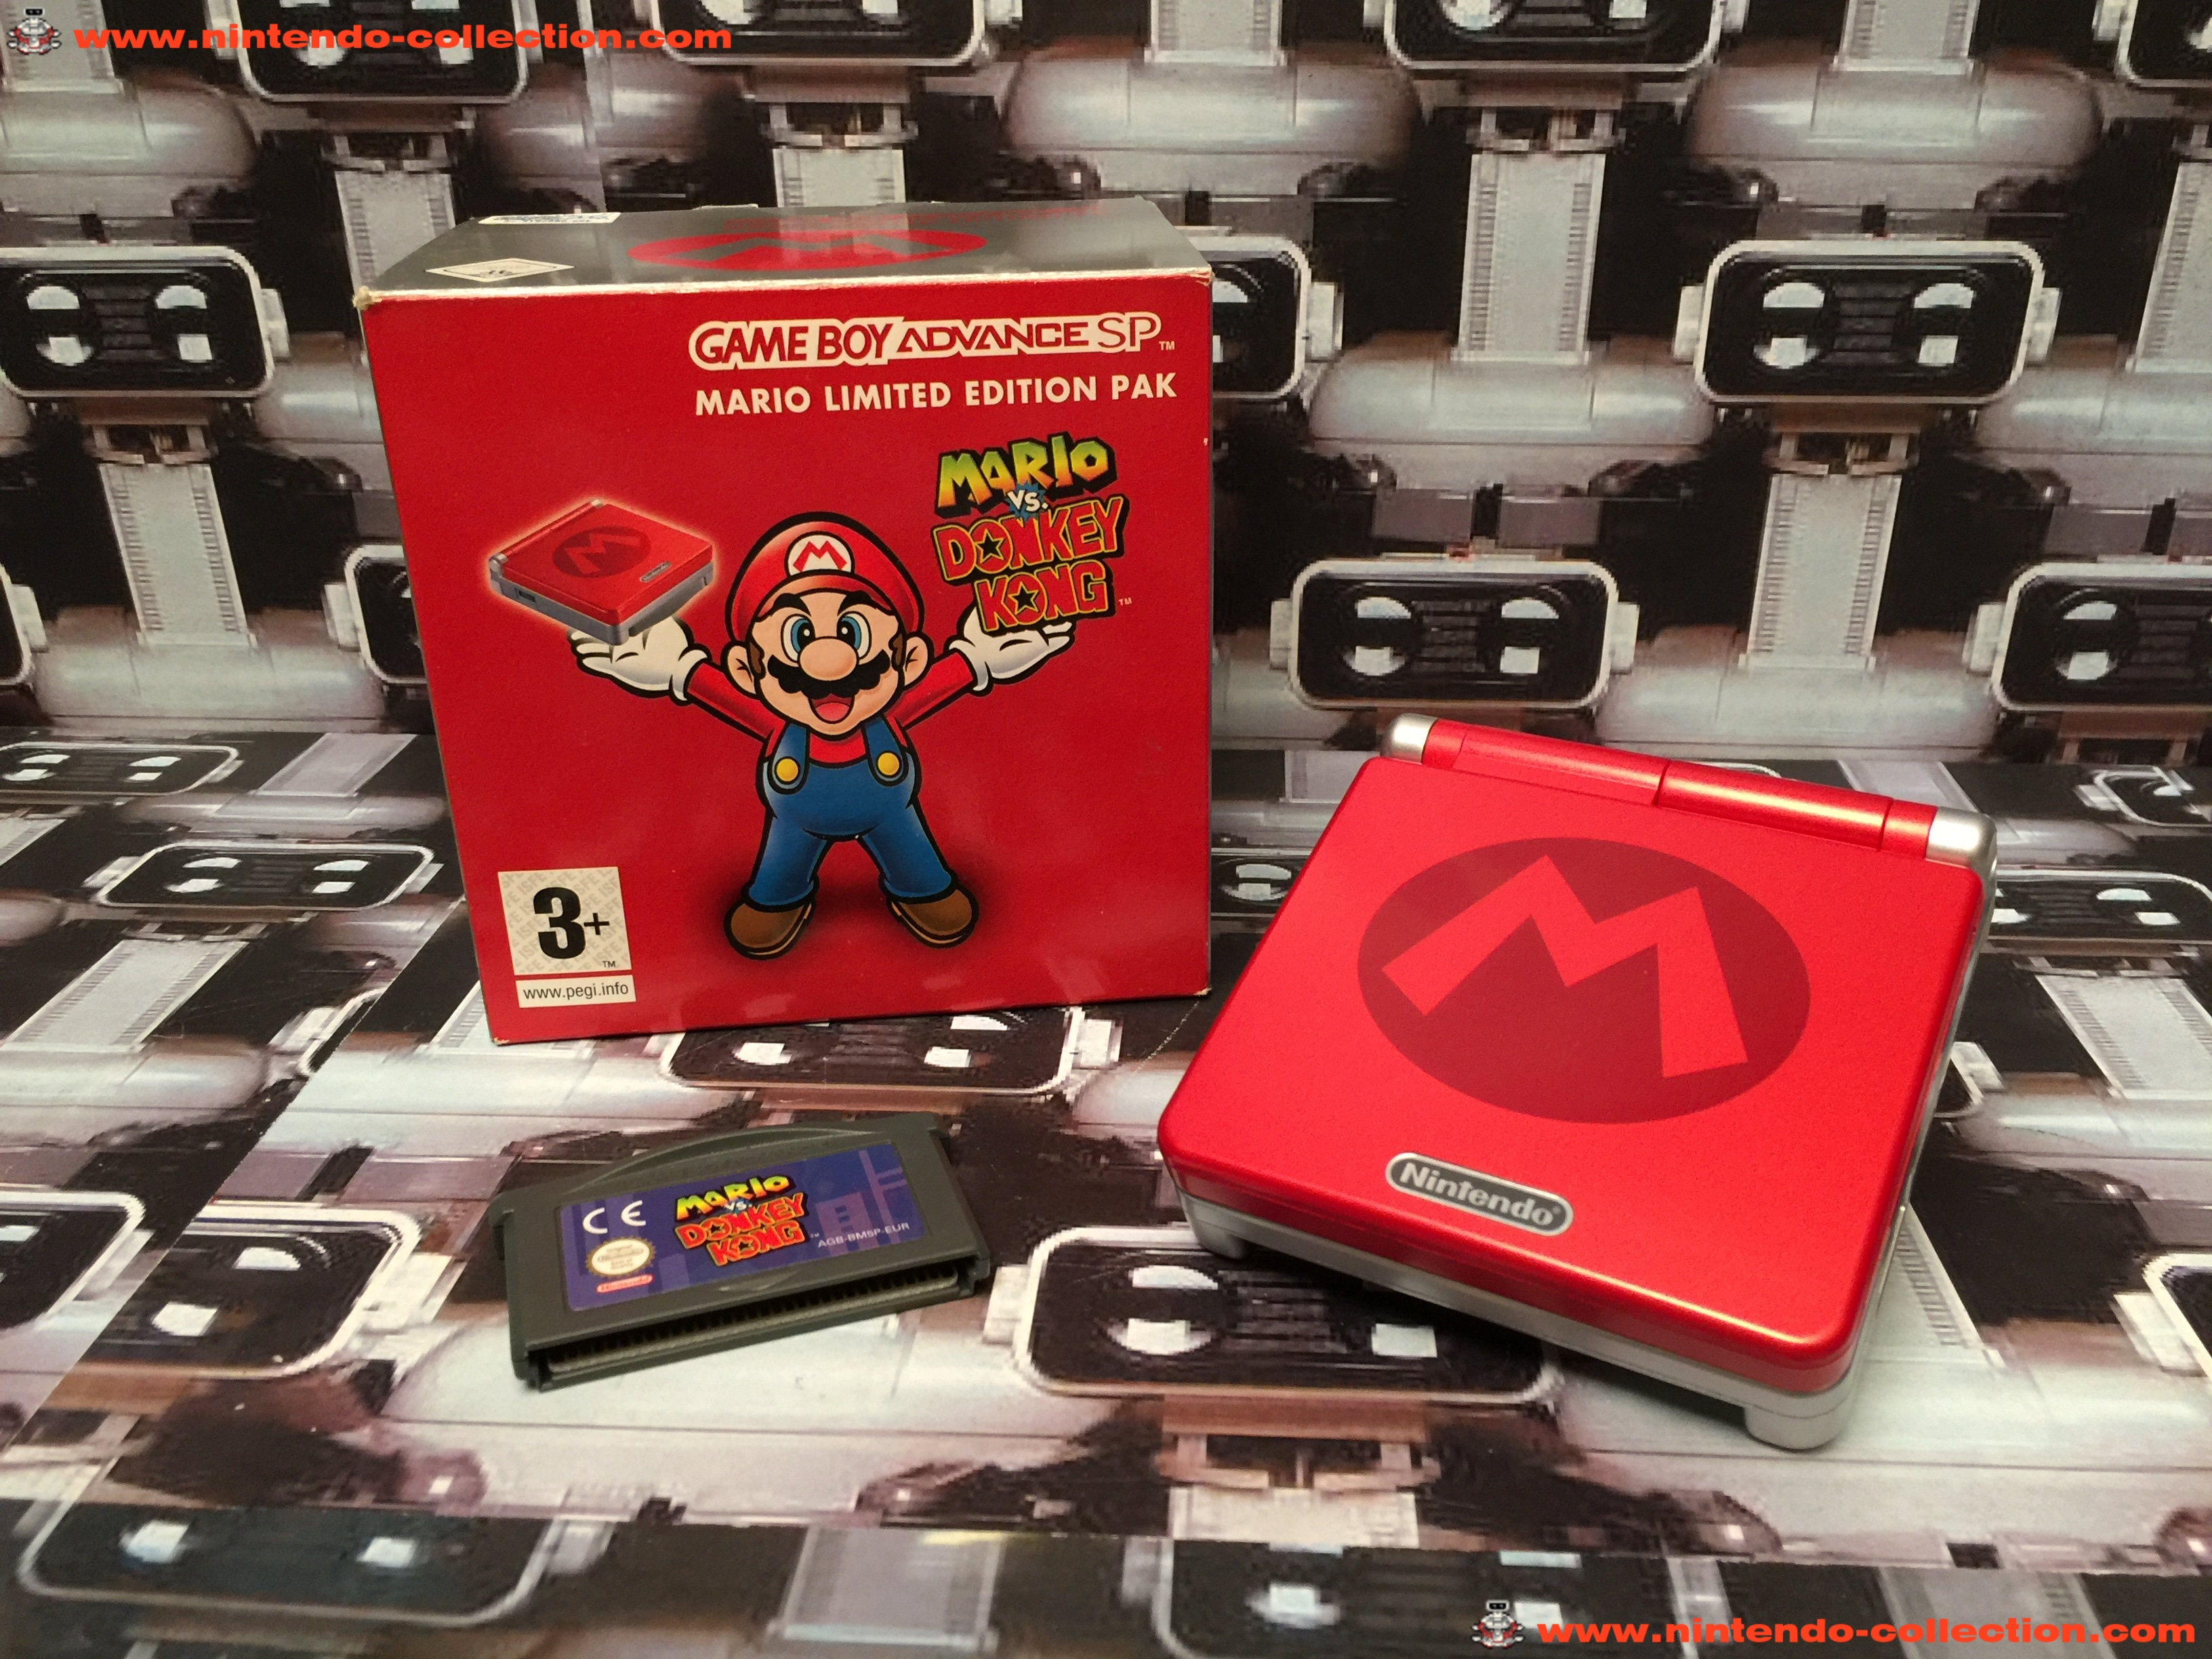 www.nintendo-collection.com - Gameboy Advance GBA SP Mario Limited Edition europeenne european - 01